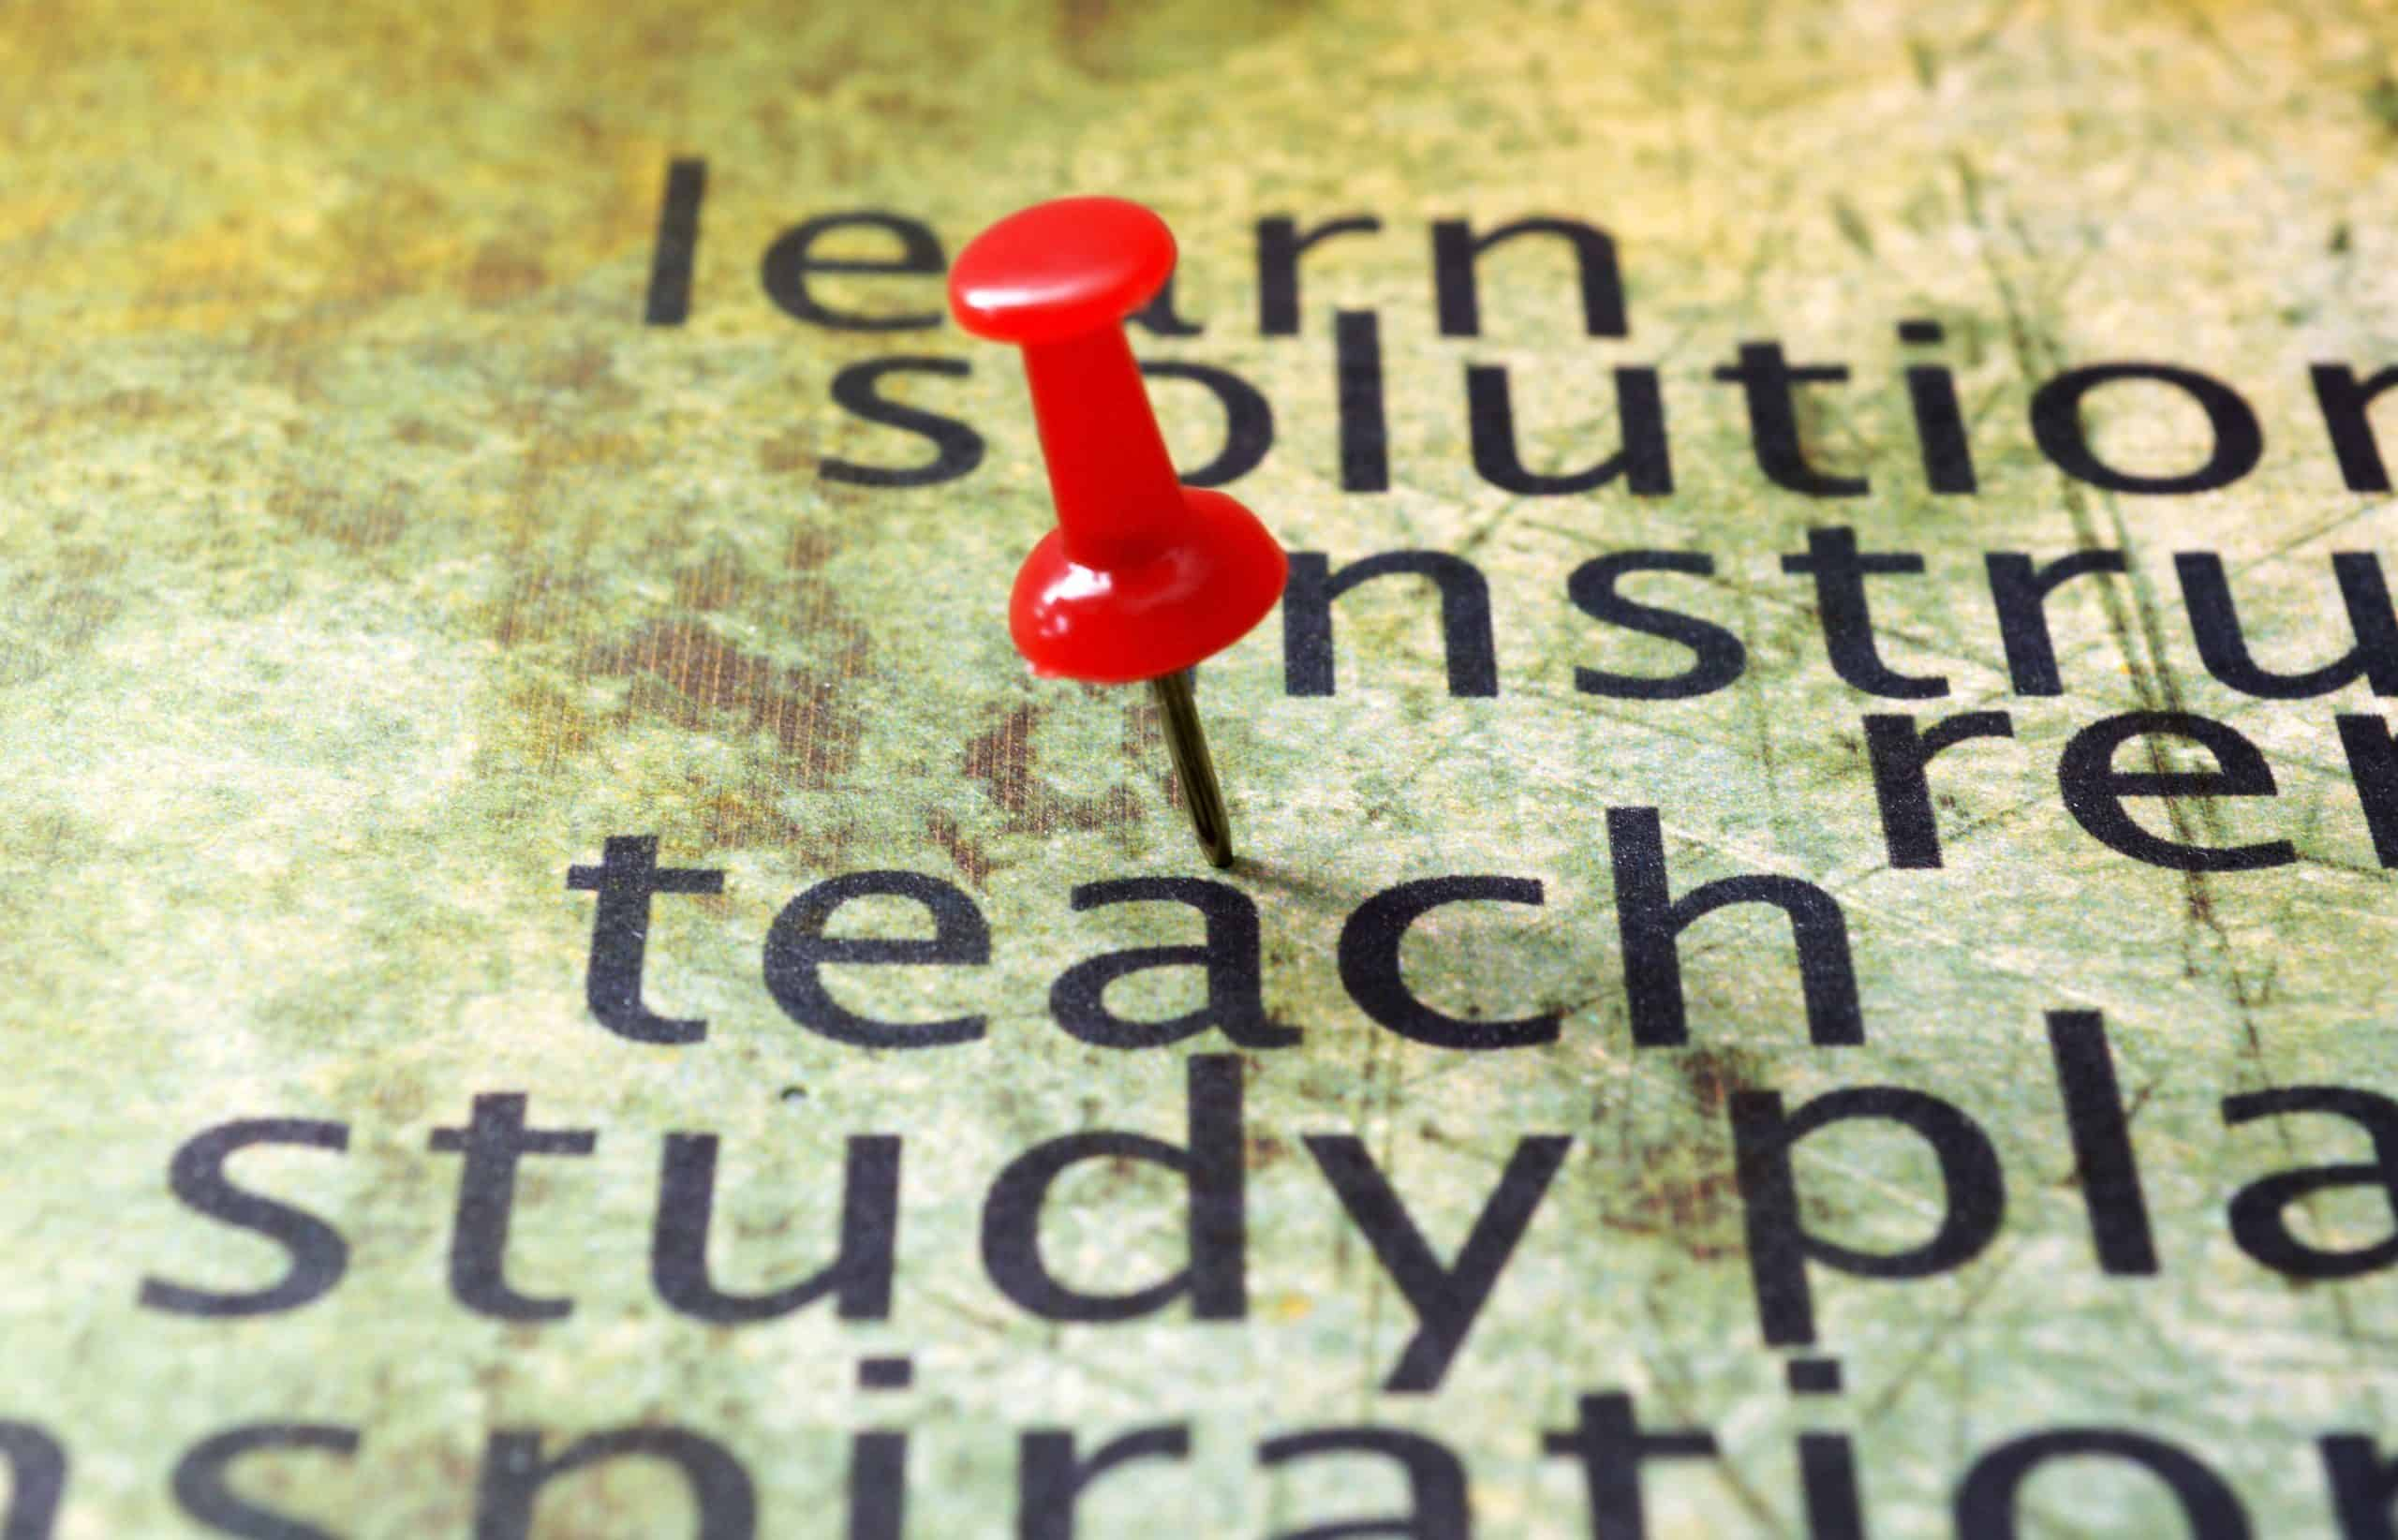 SOI From the Perspective of an Educator